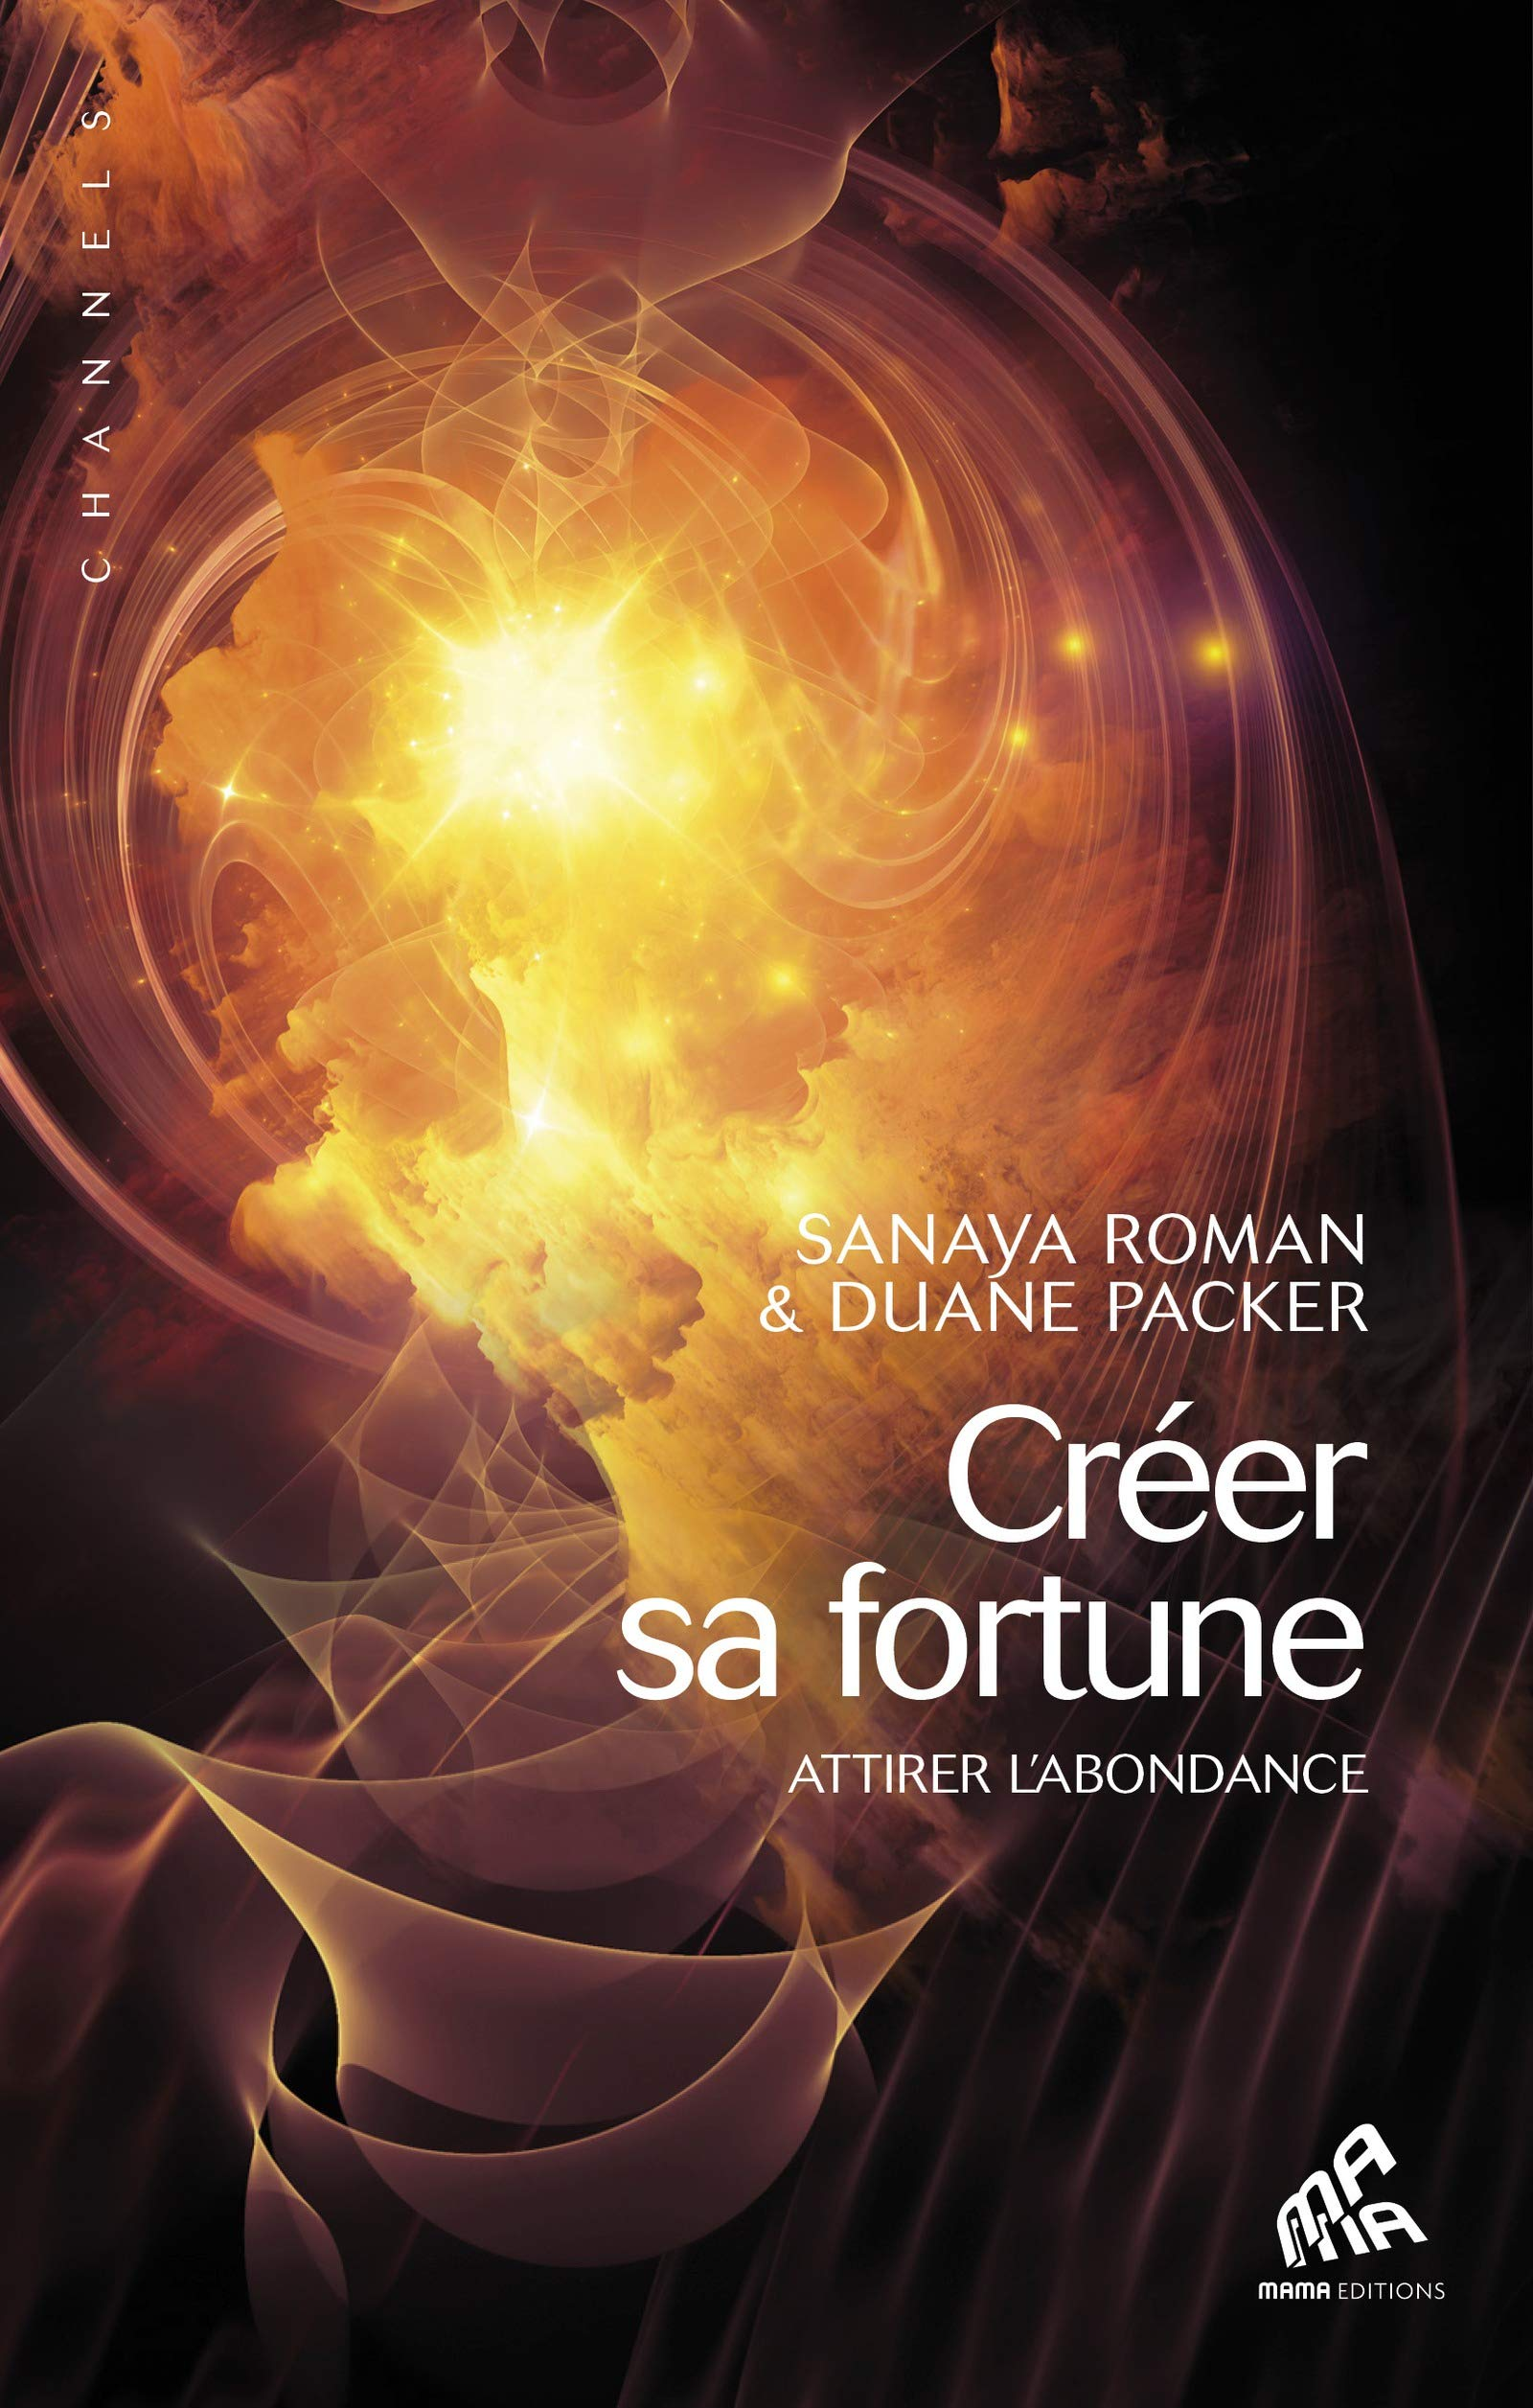 Créer sa fortune: Attirer l'abondance (Channels) (French Edition)